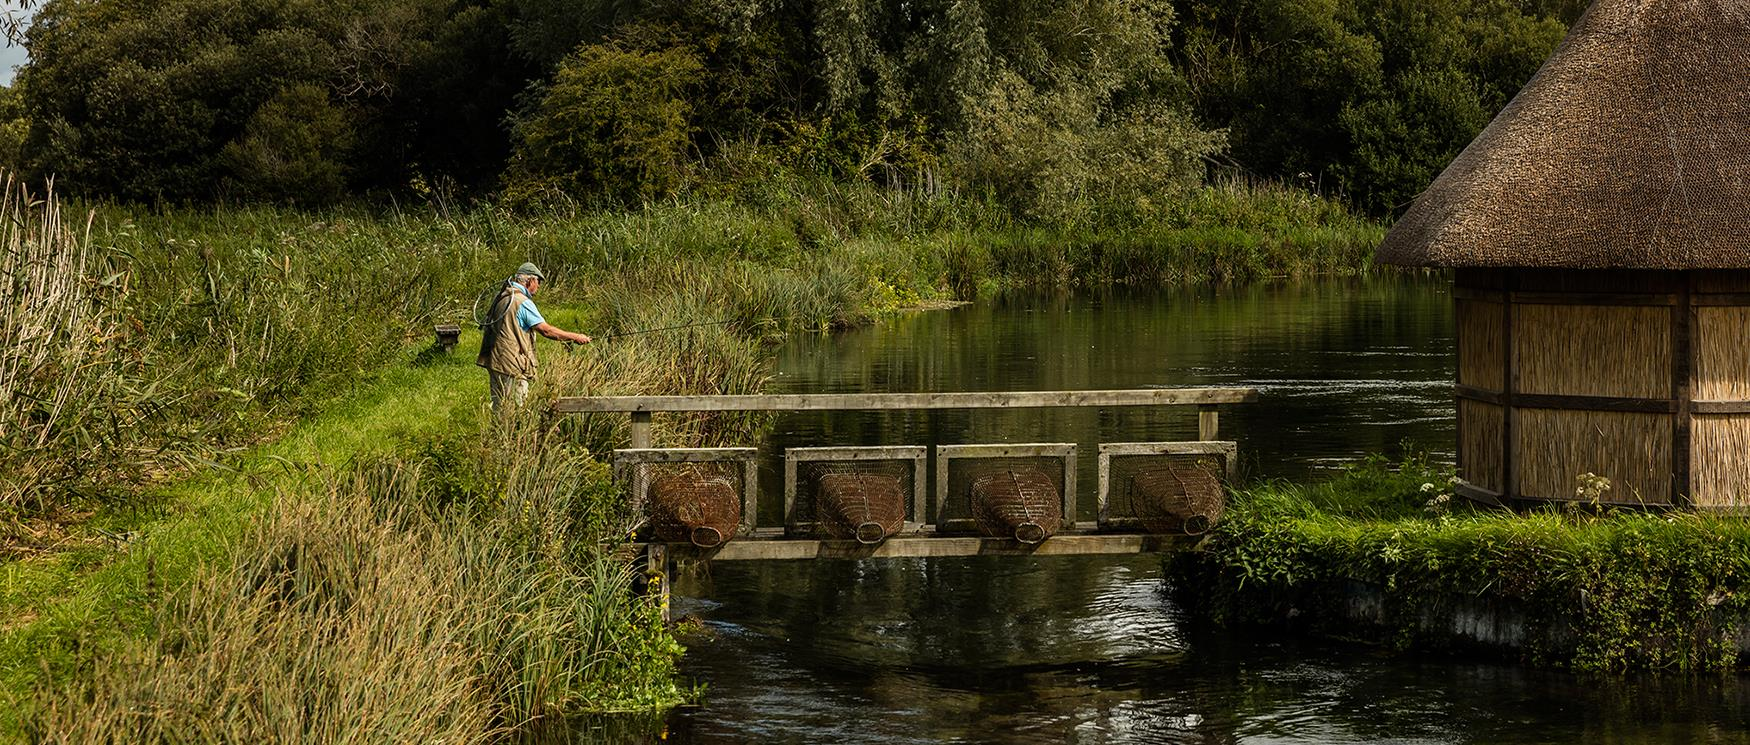 Fly Fishing on the River Test